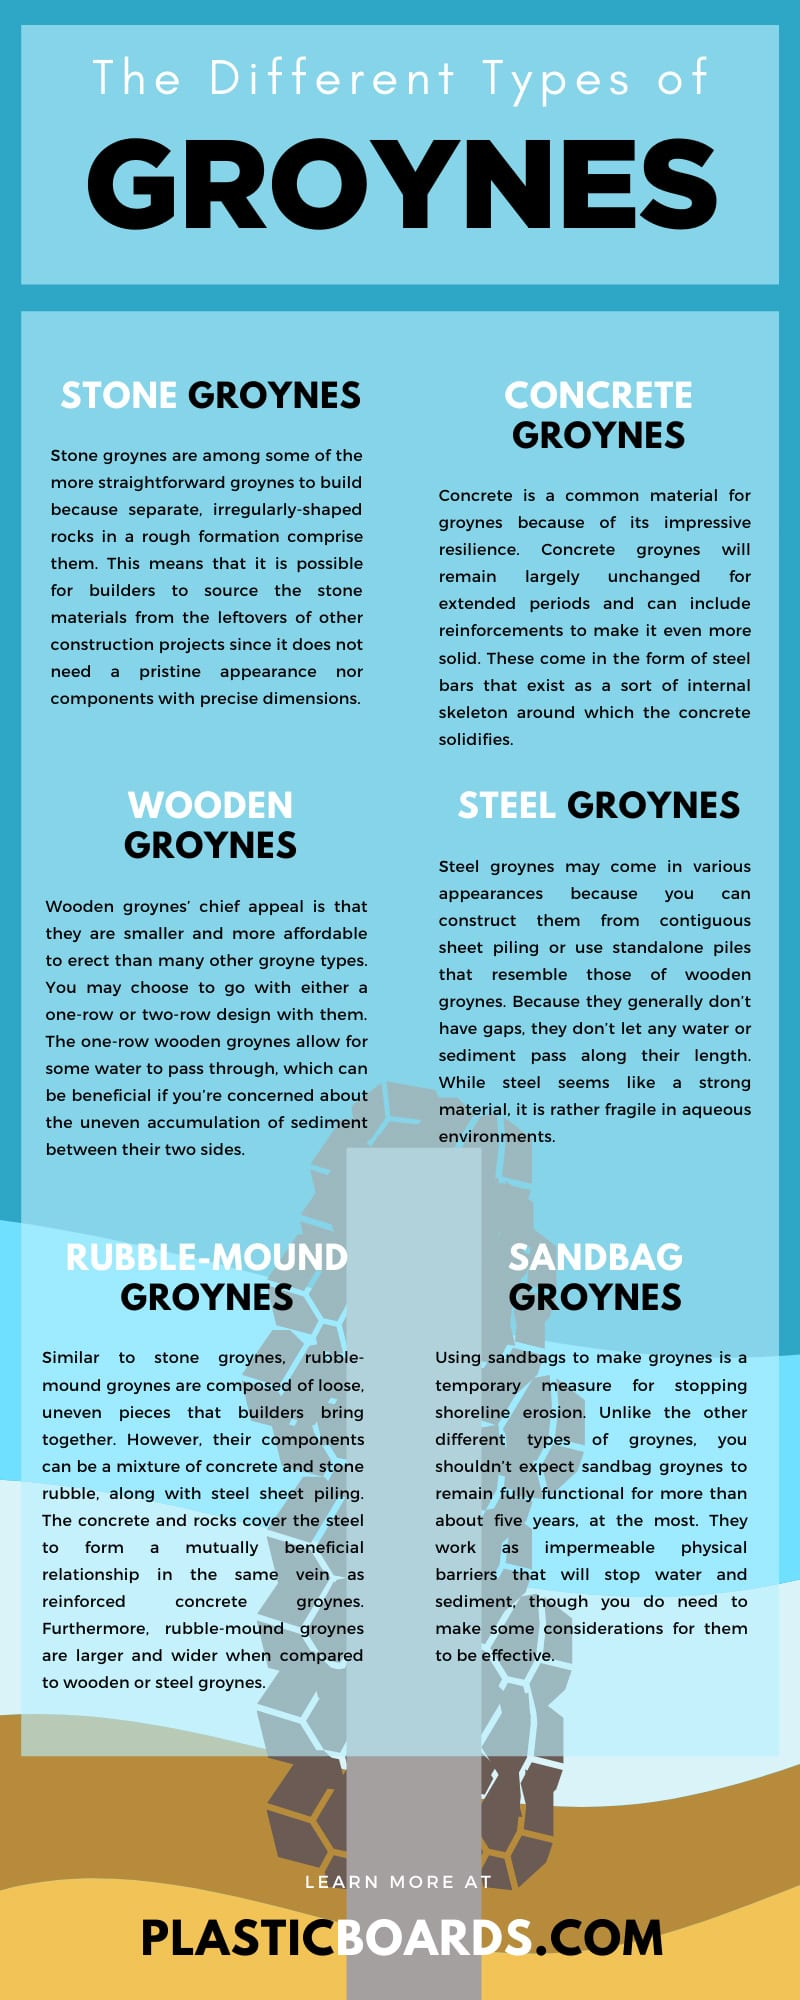 The Different Types of Groynes